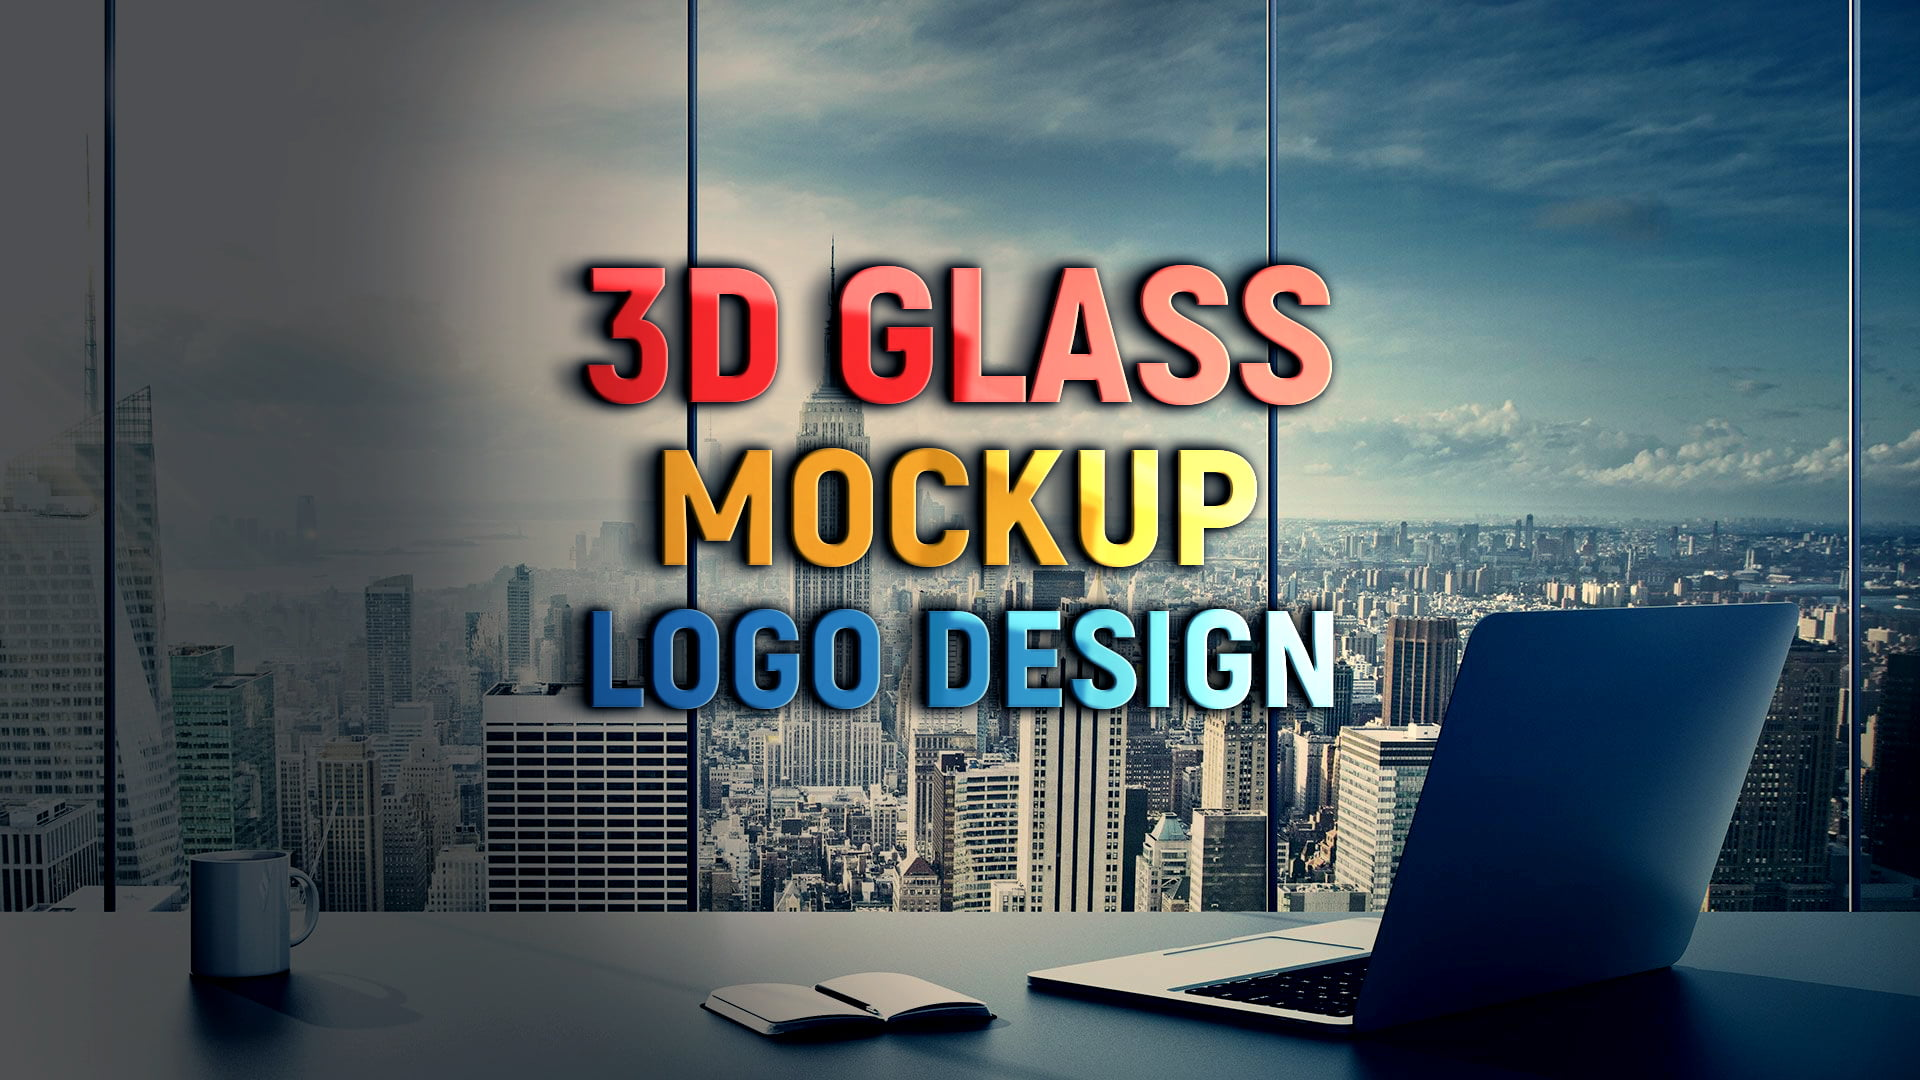 Free PSD 3D Wall Glass Logo Mockup Design